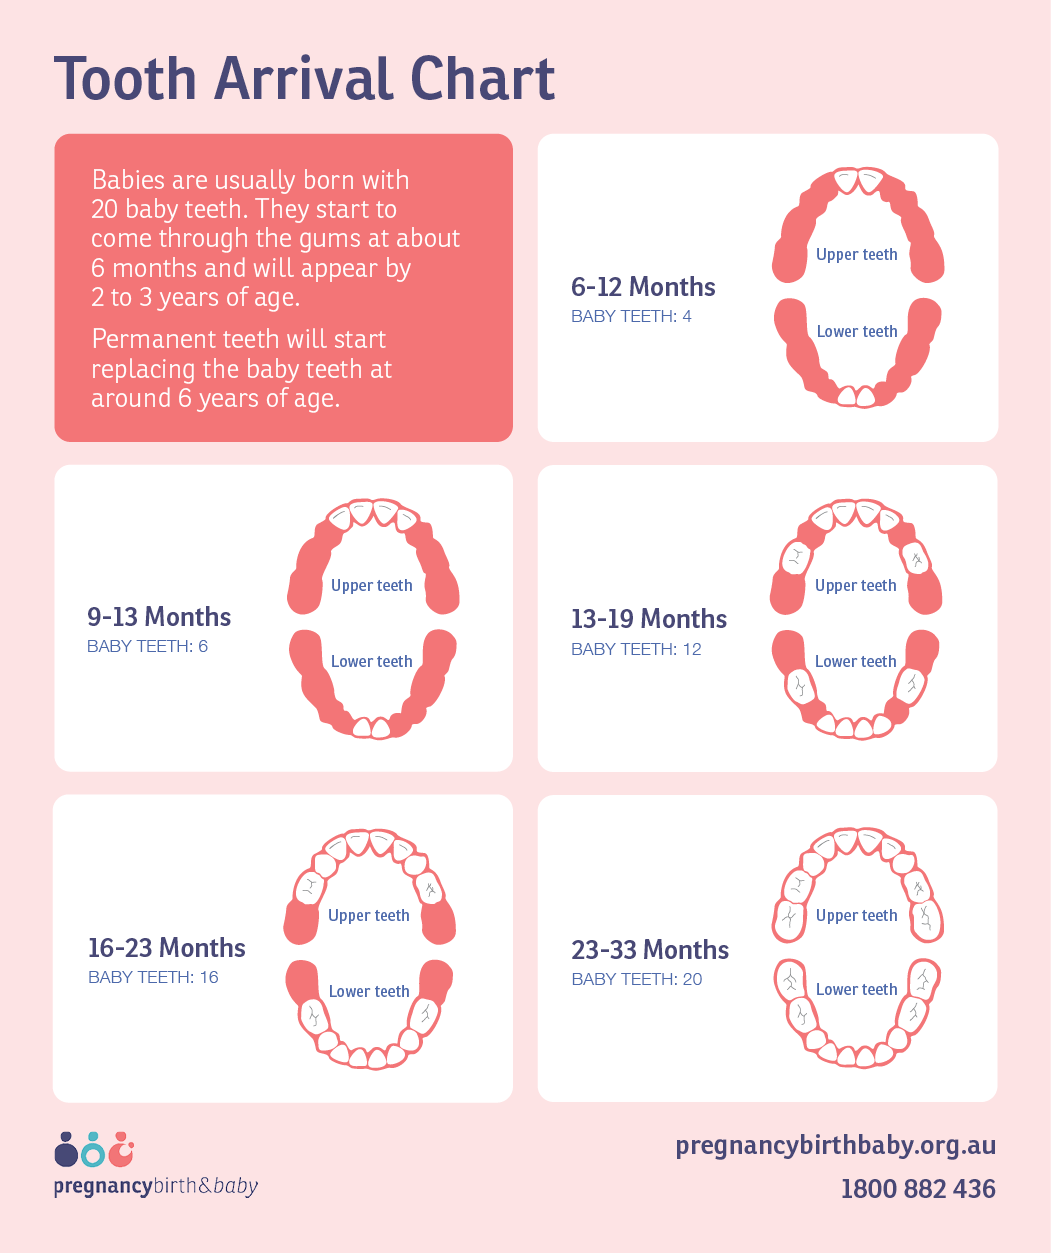 Tooth arrival chart - infographic